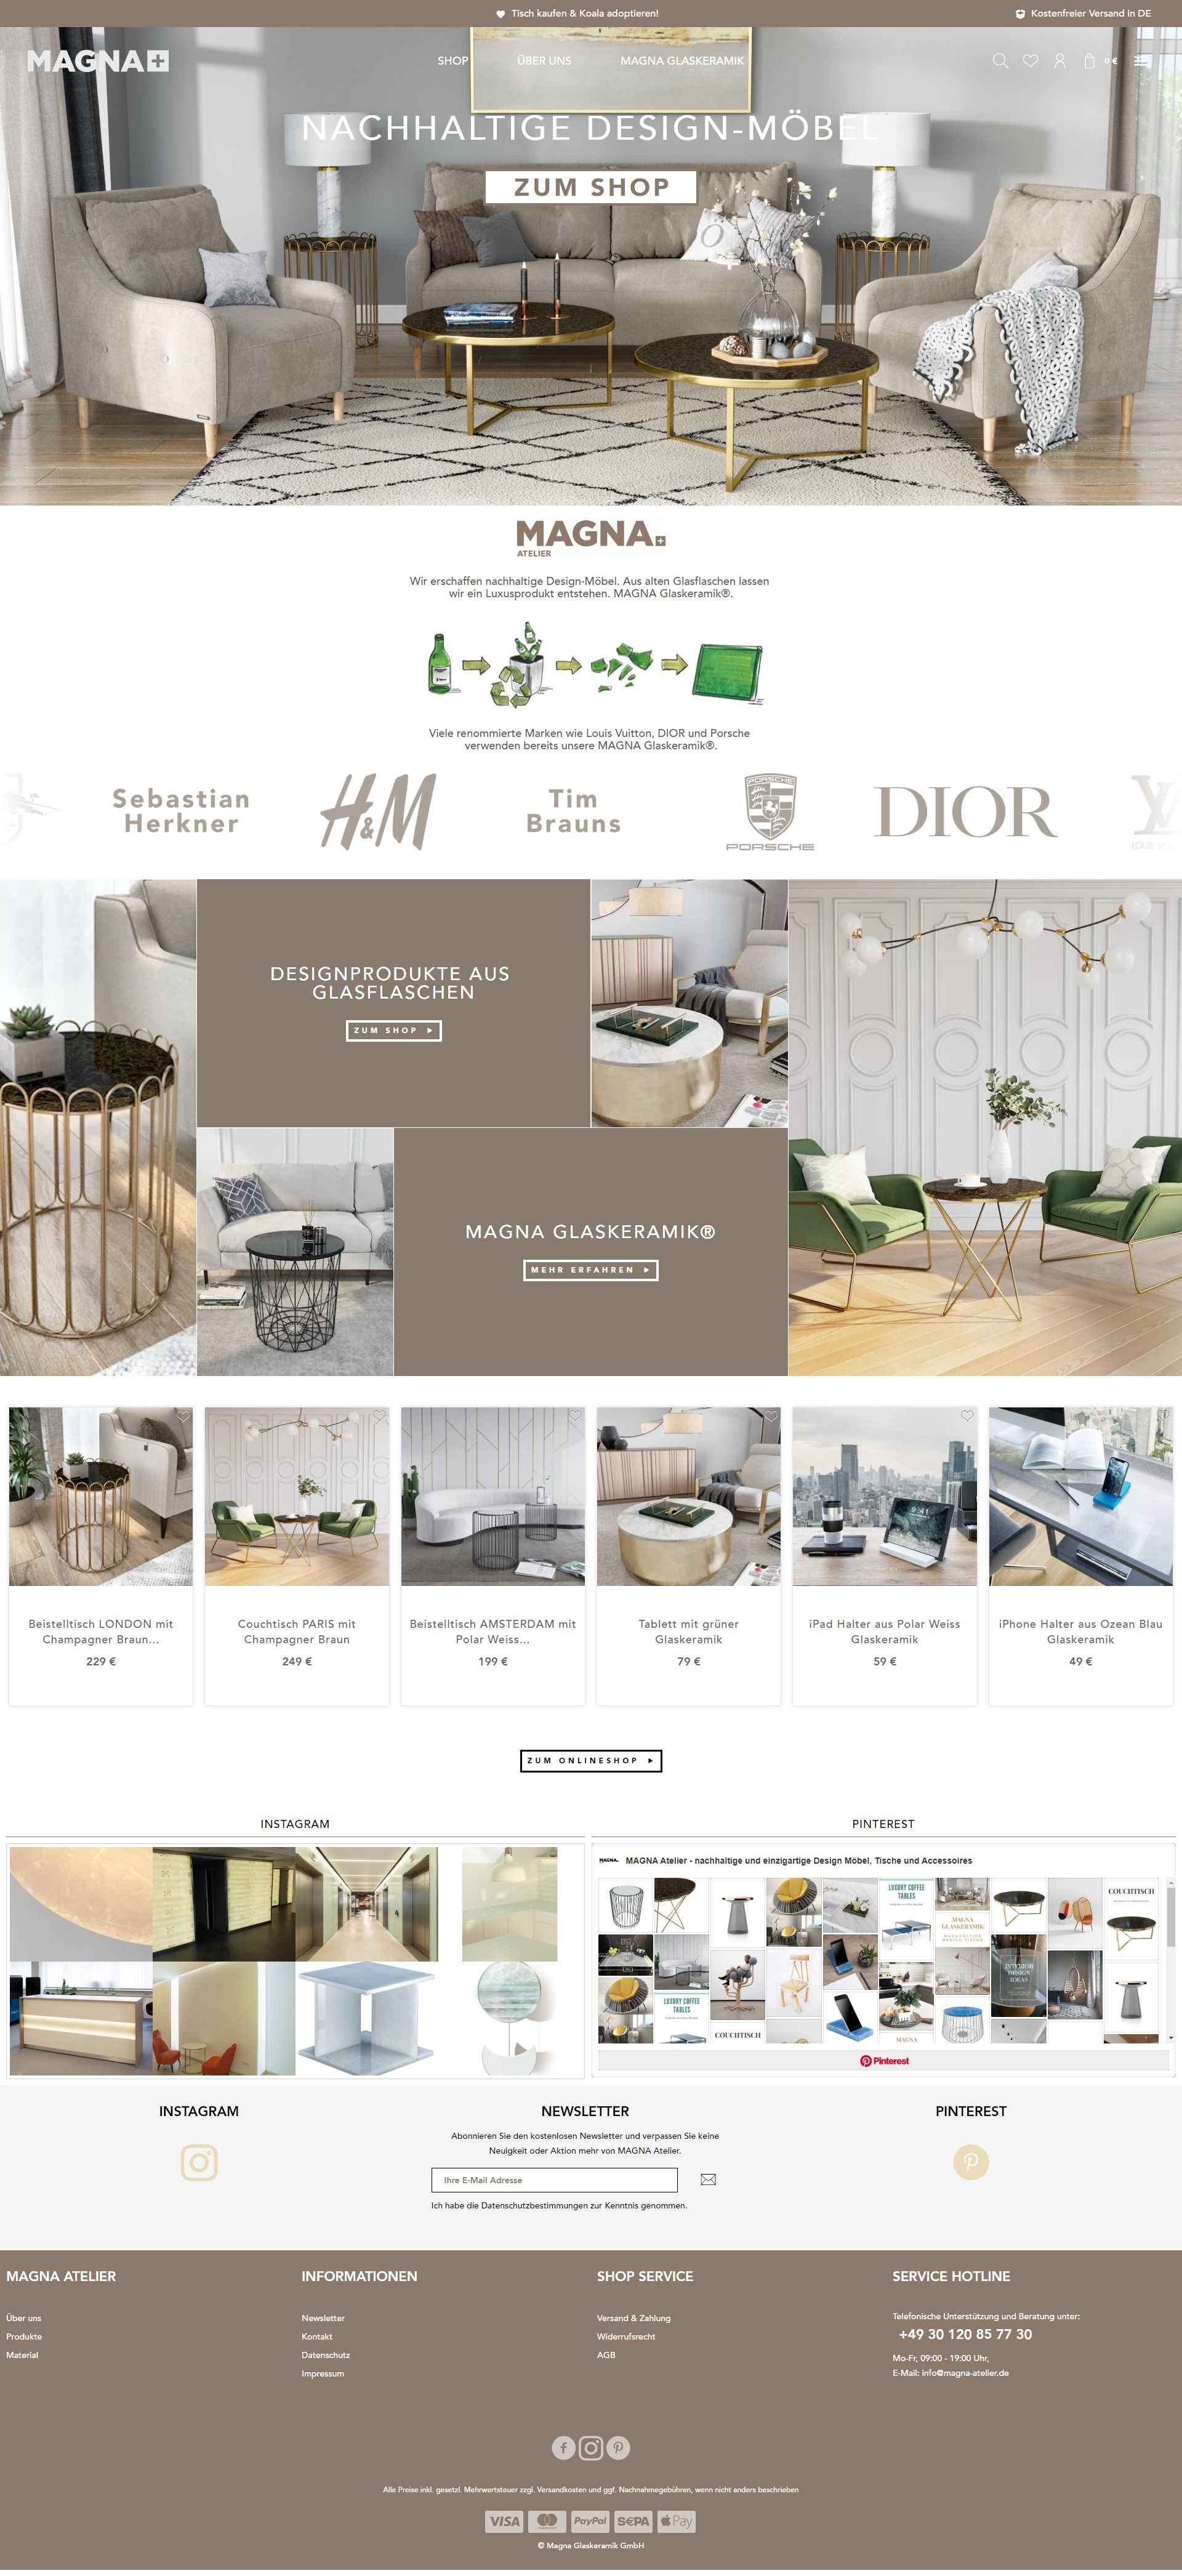 e-commerce shopware onlineshop webdesign templates design